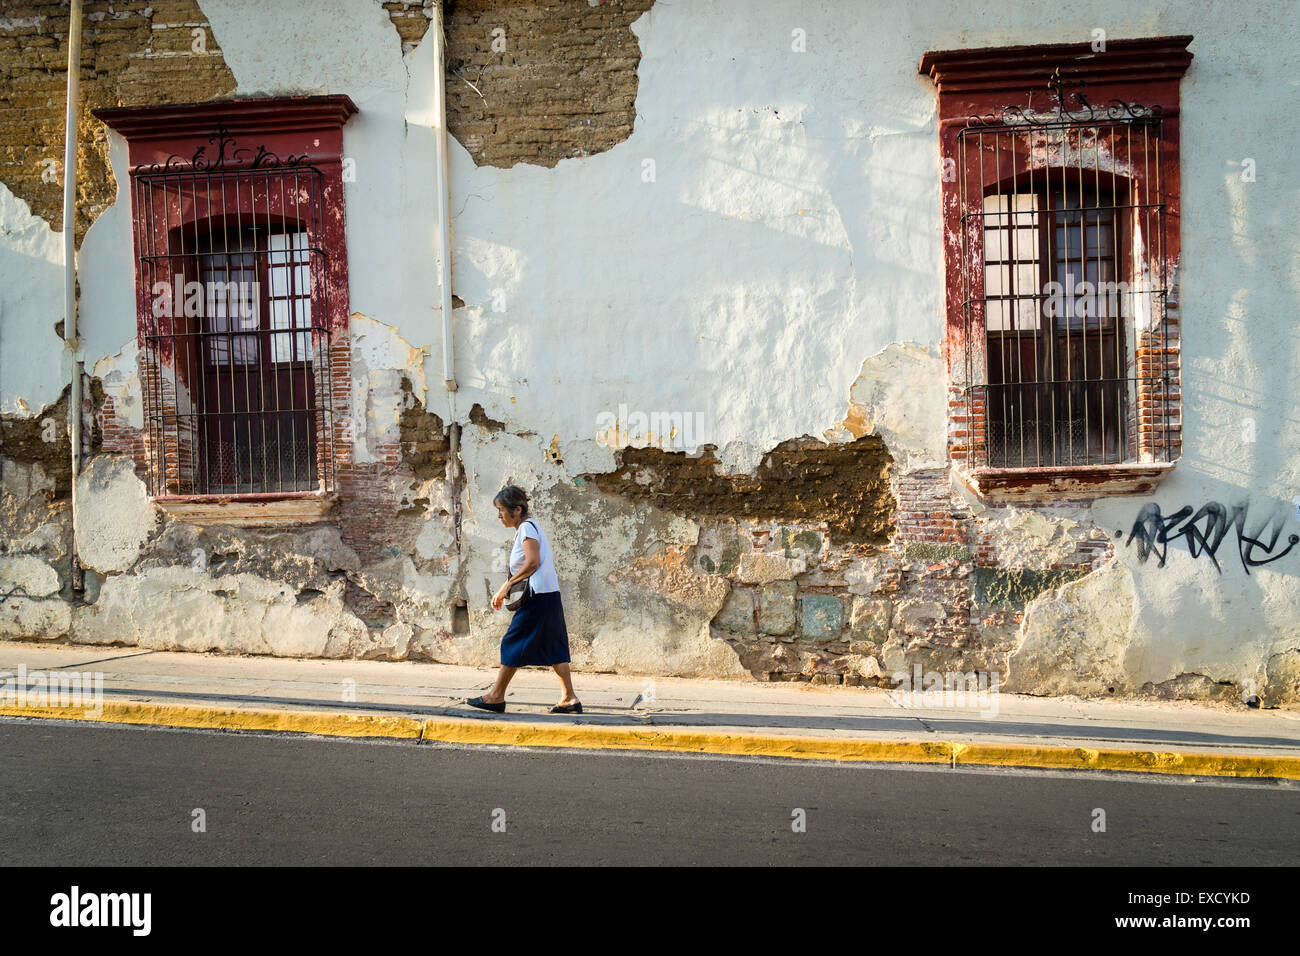 Woman walking up sloped street in front of old decaying stucco building facade - Stock Image